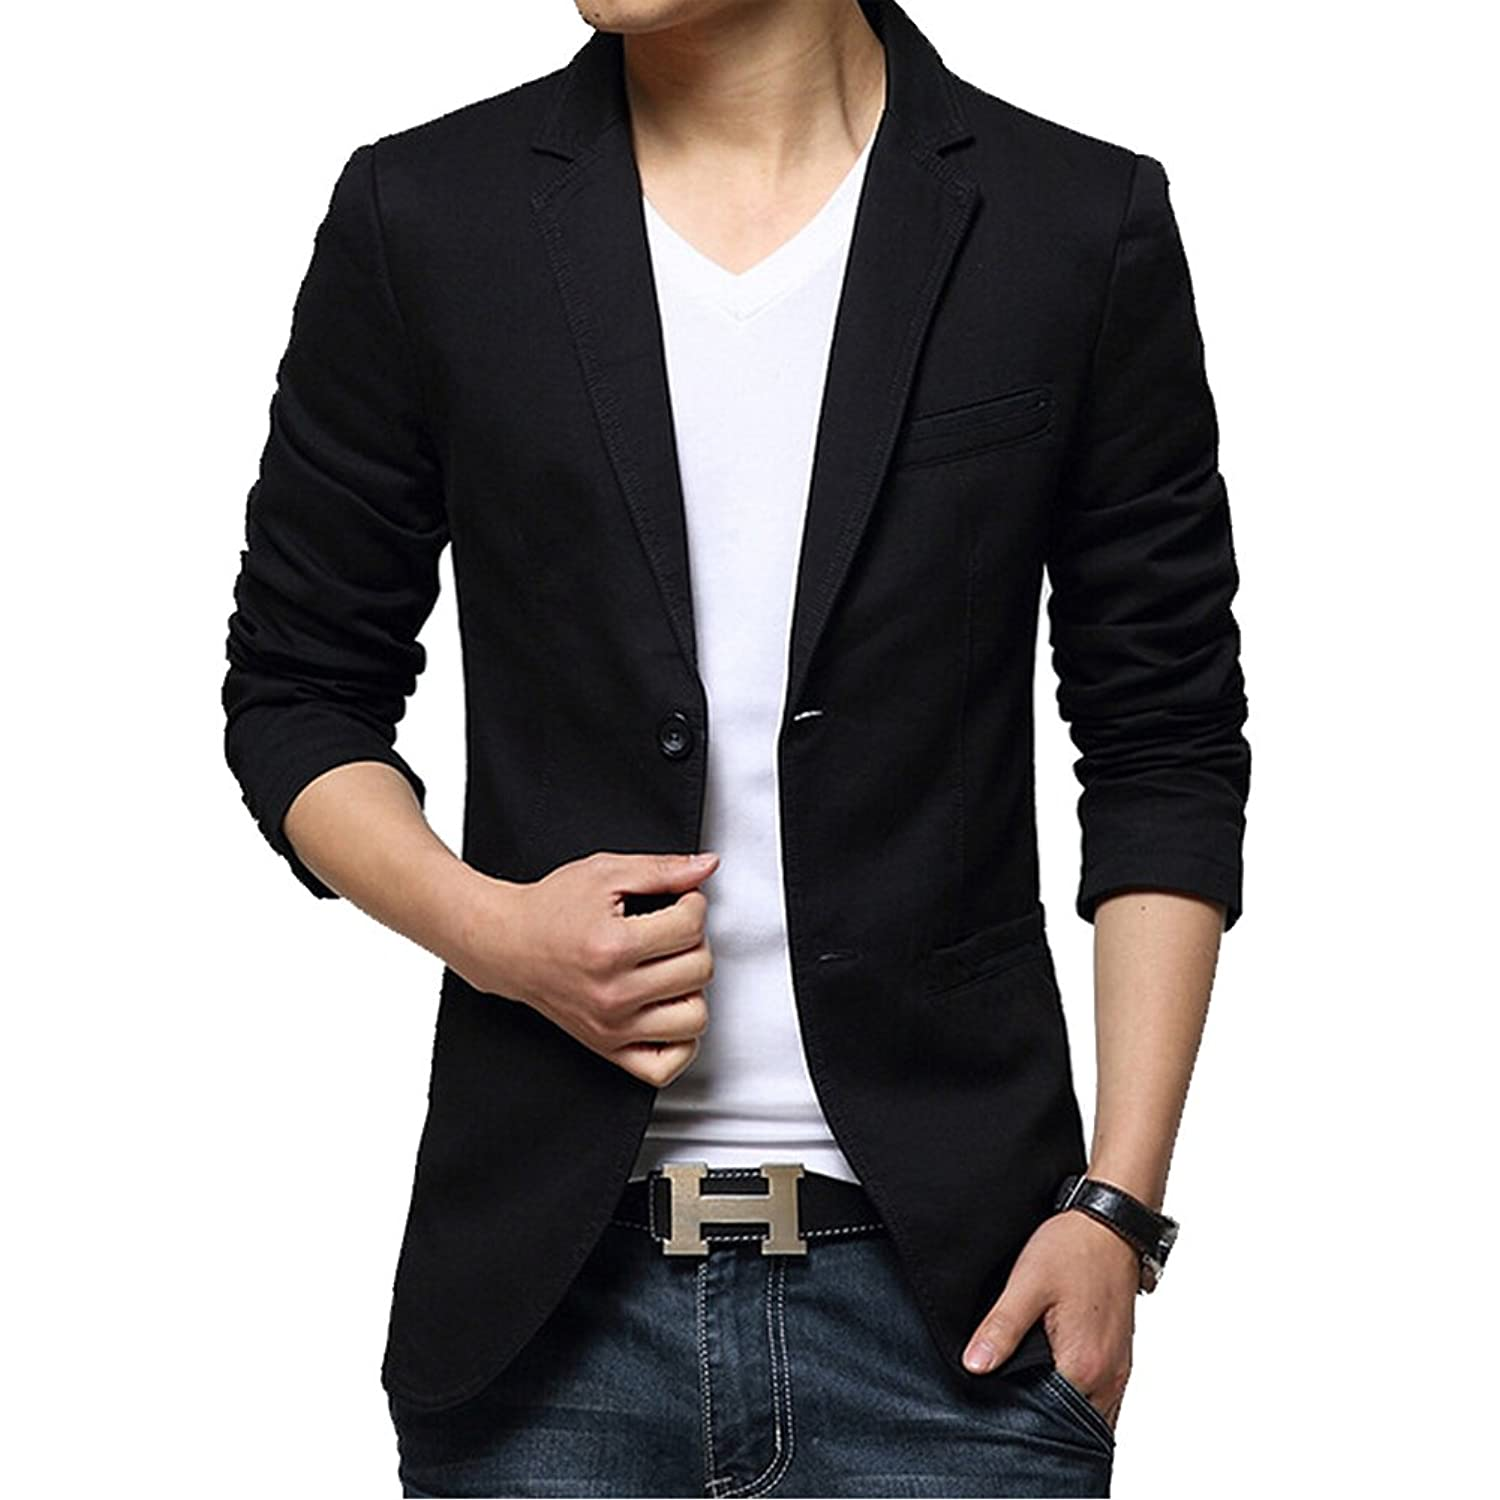 iPretty Men's Suit Jacket Fashion Slim Cotton Thin Casual Two